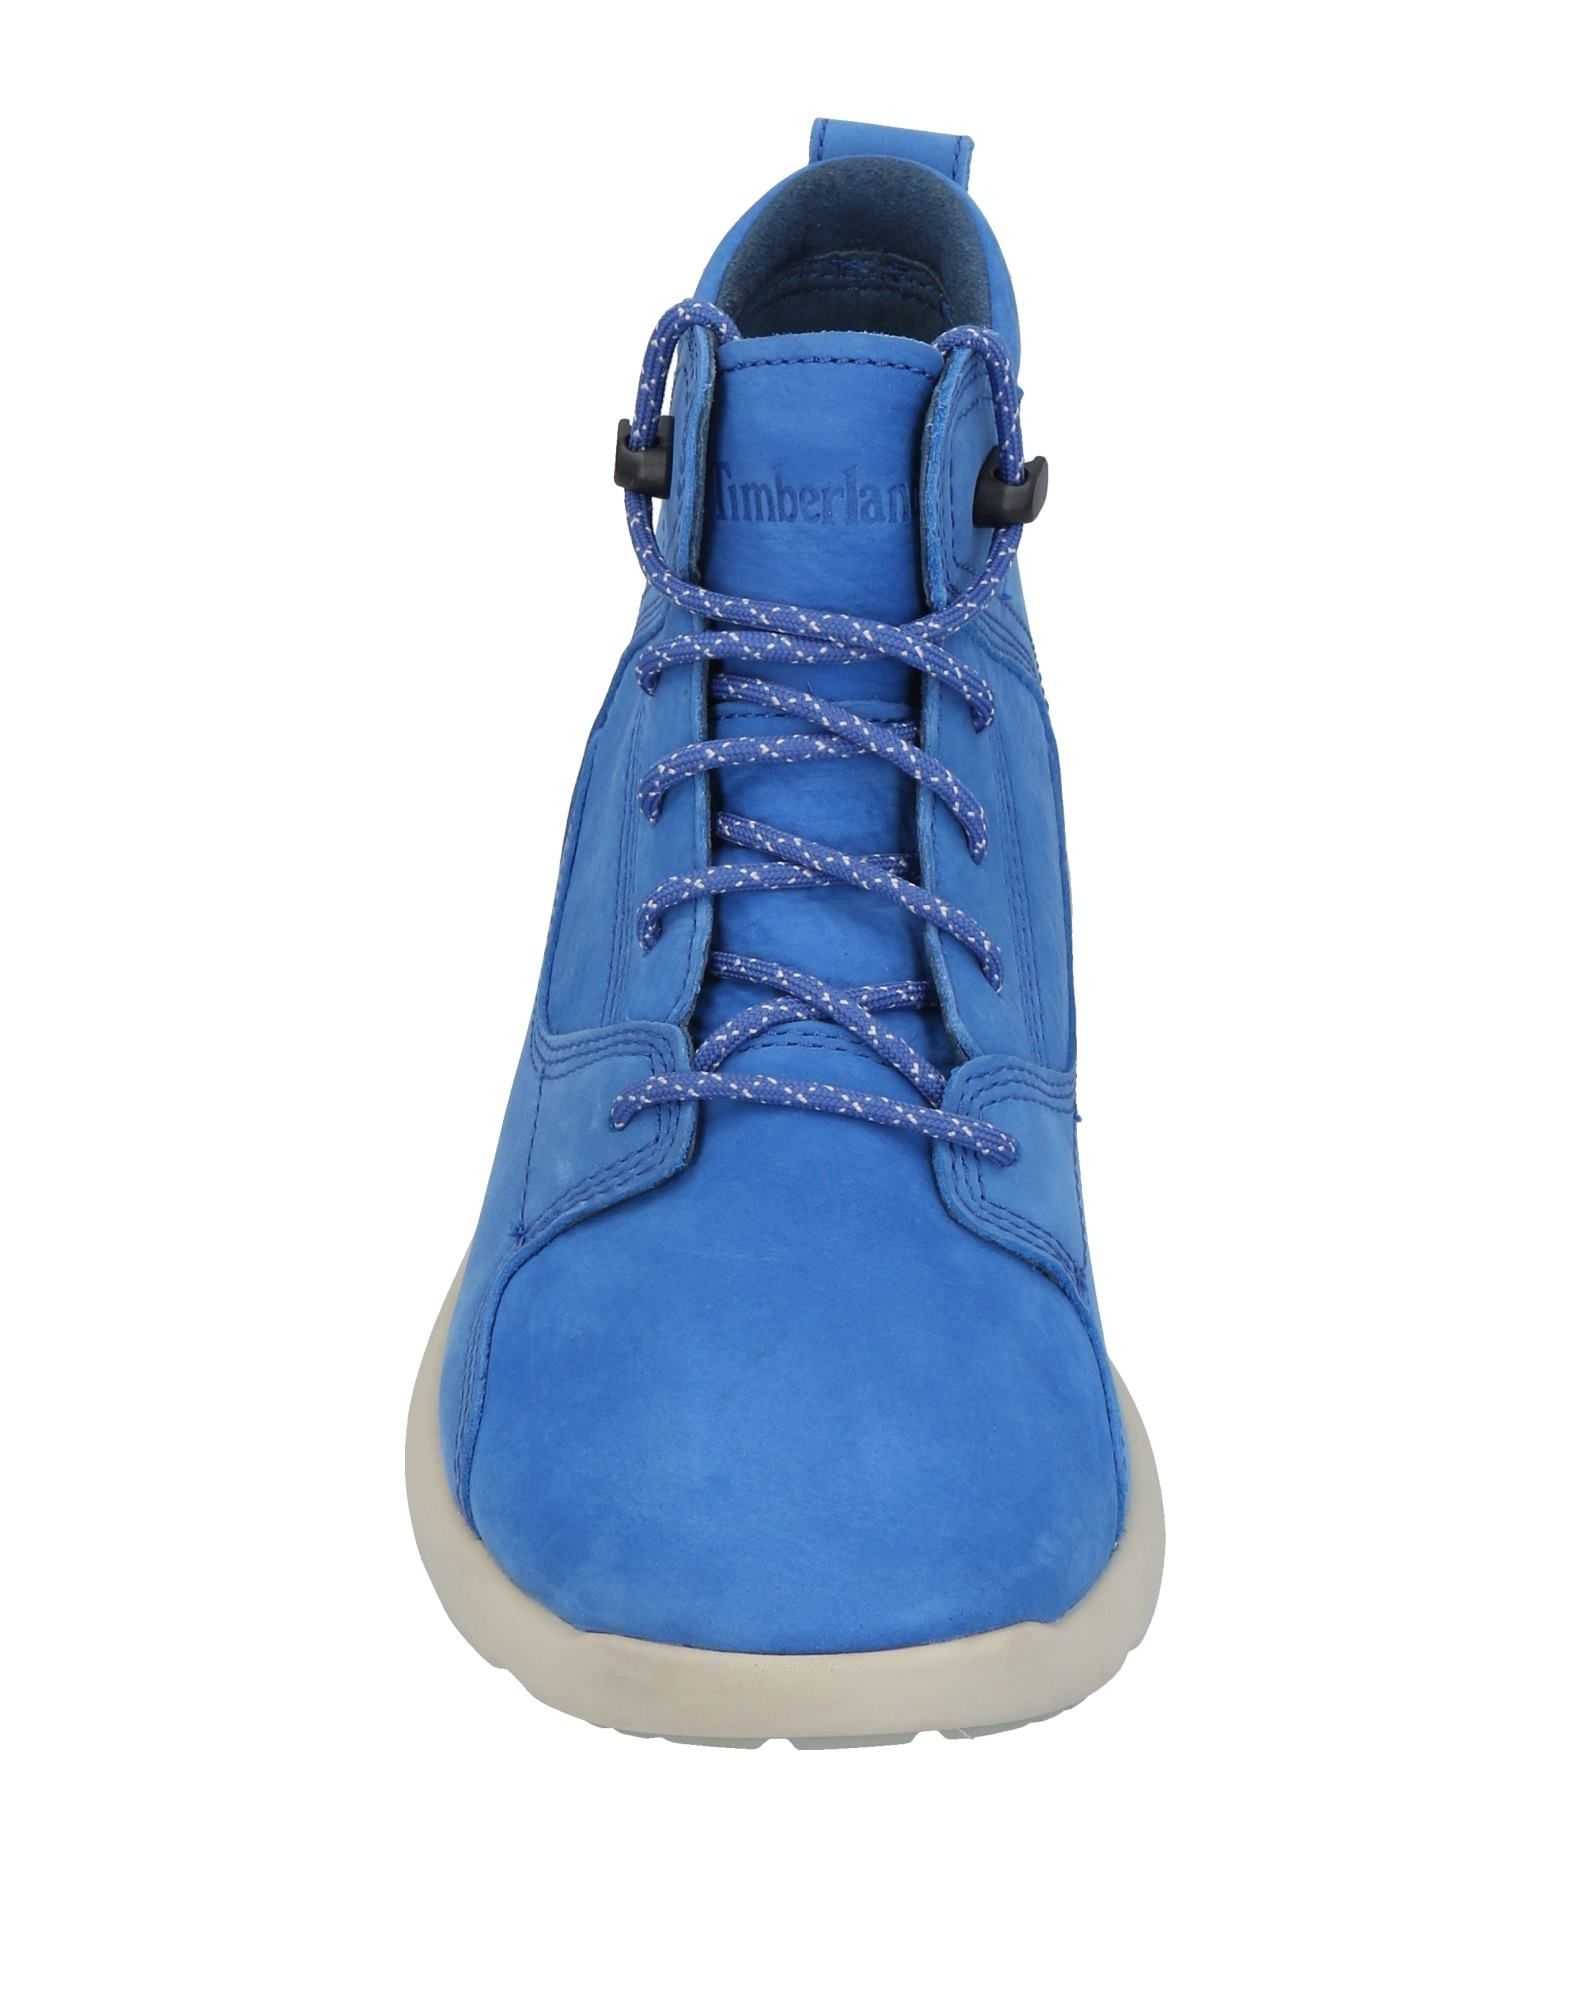 Sneakers Timberland Homme - Sneakers Timberland sur